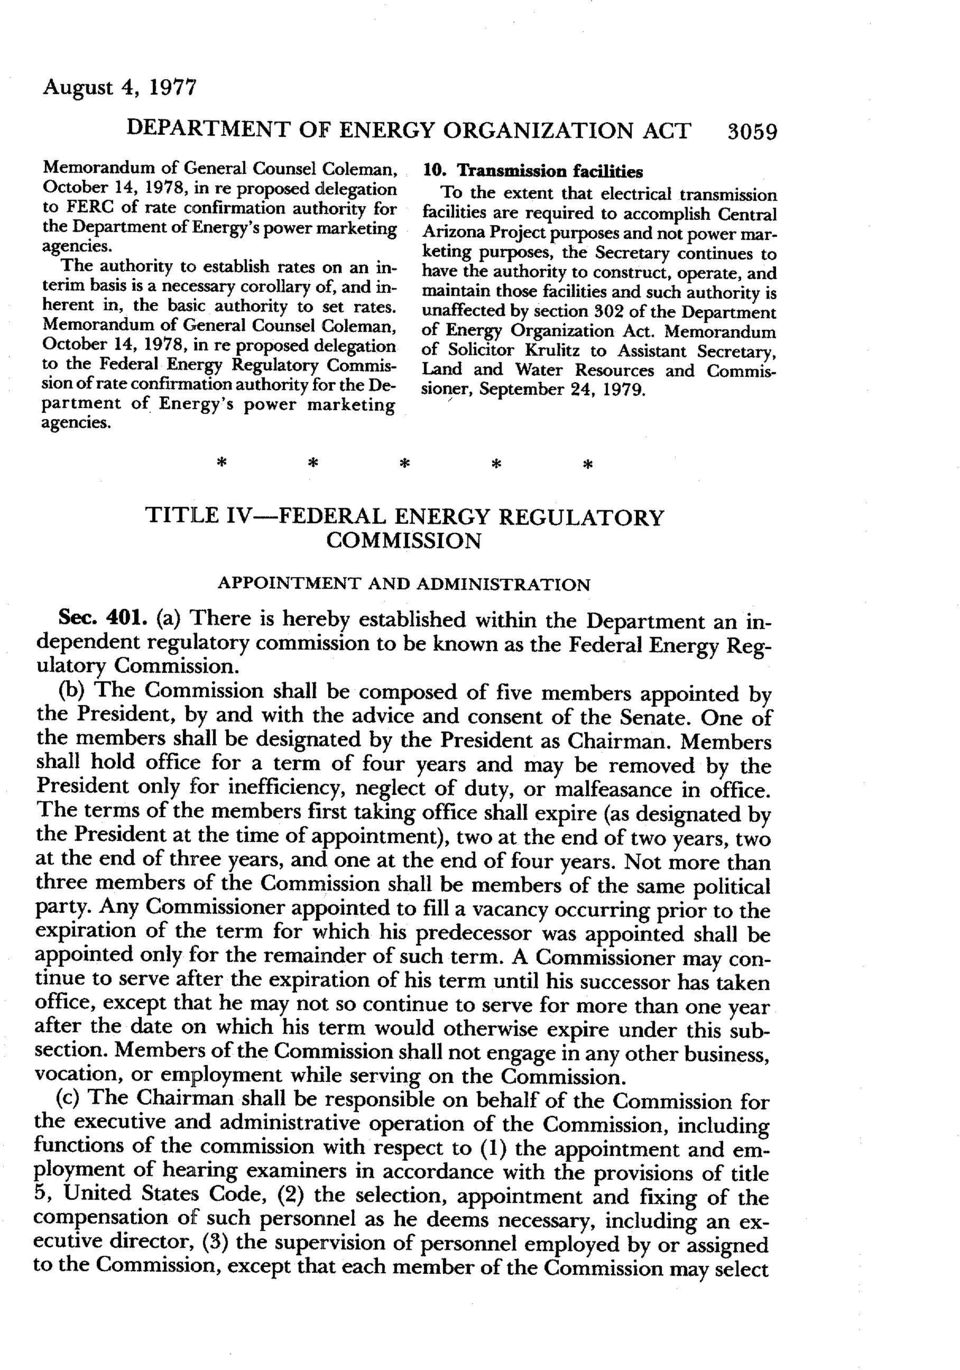 Memorandum of General CounselColeman, October 14, 1978, in re proposed delegation to the Federal Energy Regulatory Commissionof rate confirmationauthority for the Department of Energy s power